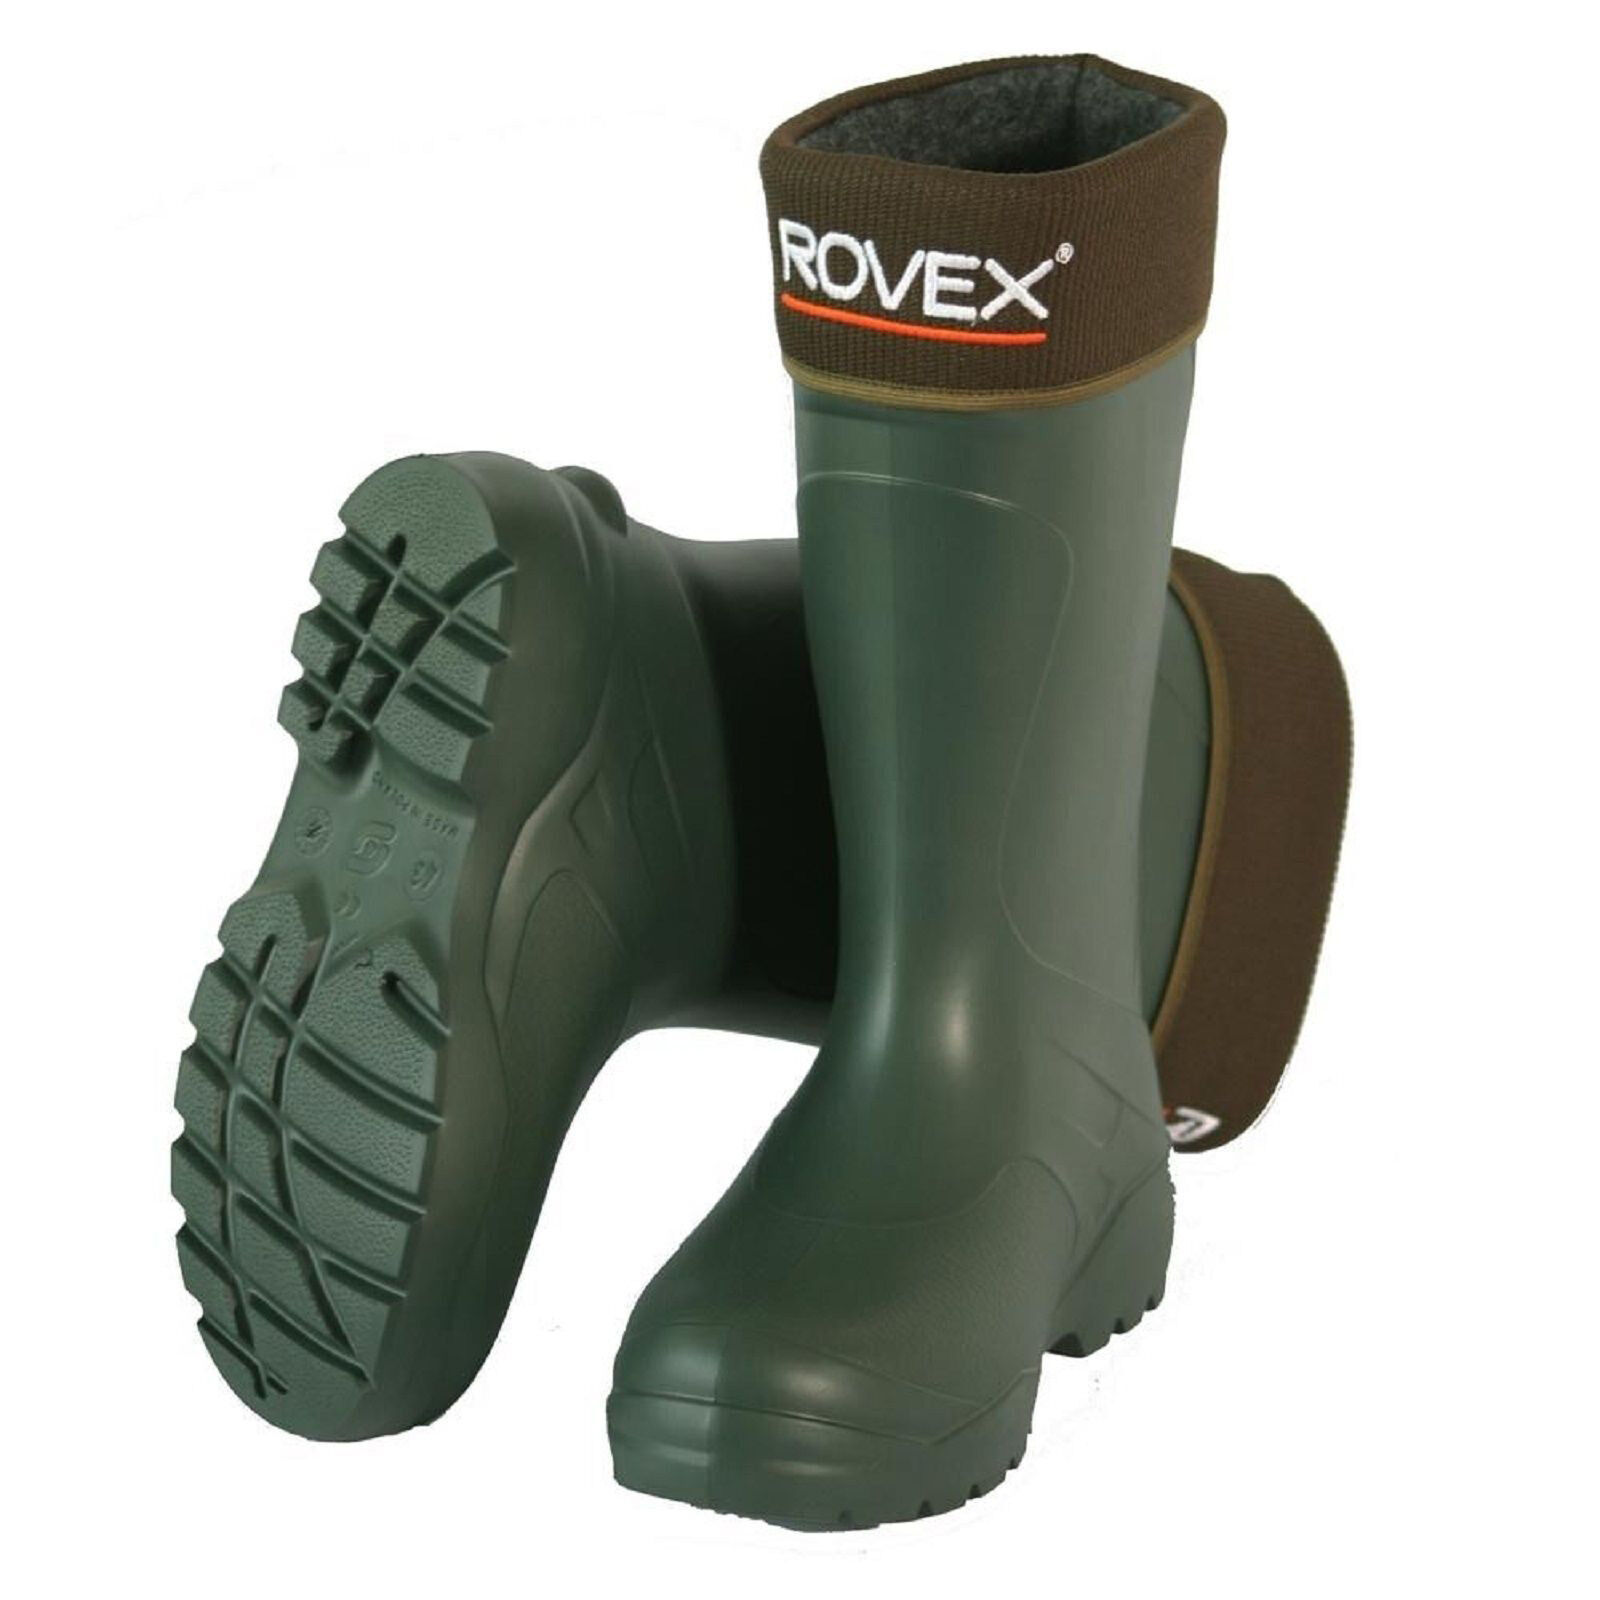 Masterline Rovex Fishing Arctic Lightweight Thermal Boots  & Boot Liners  looking for sales agent